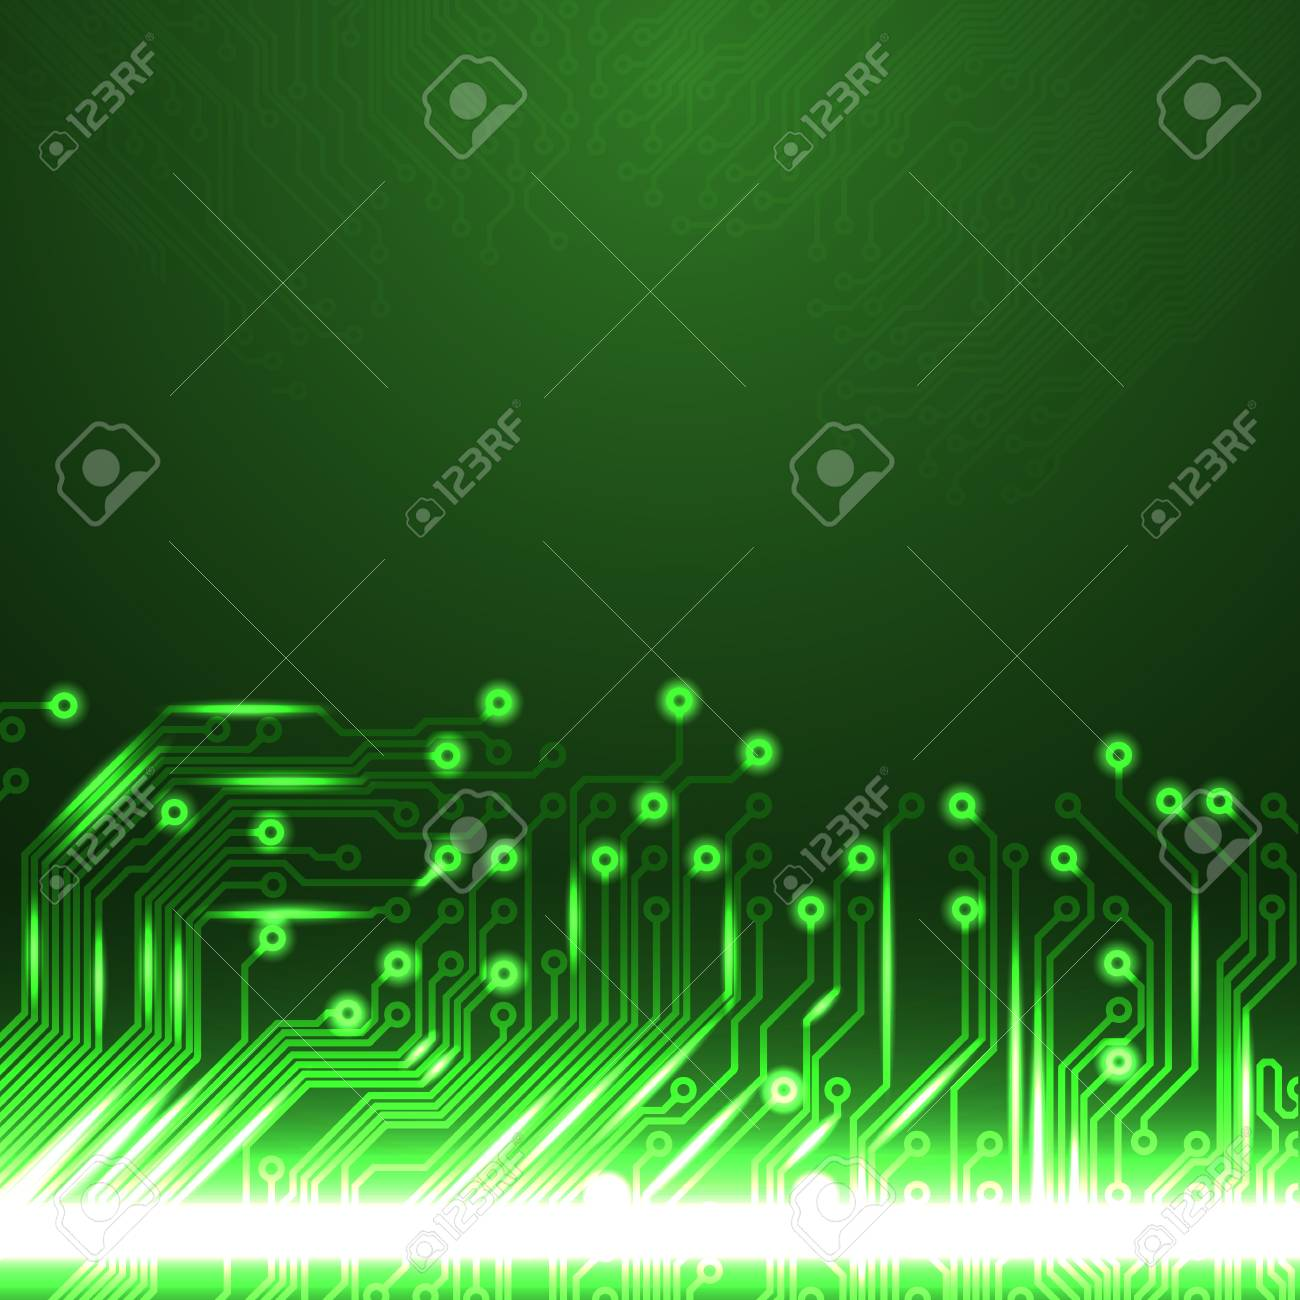 Abstract Electronics Green Background With Circuit Board Texture Textures Pinterest Eps10 Vector Pattern For Your Business